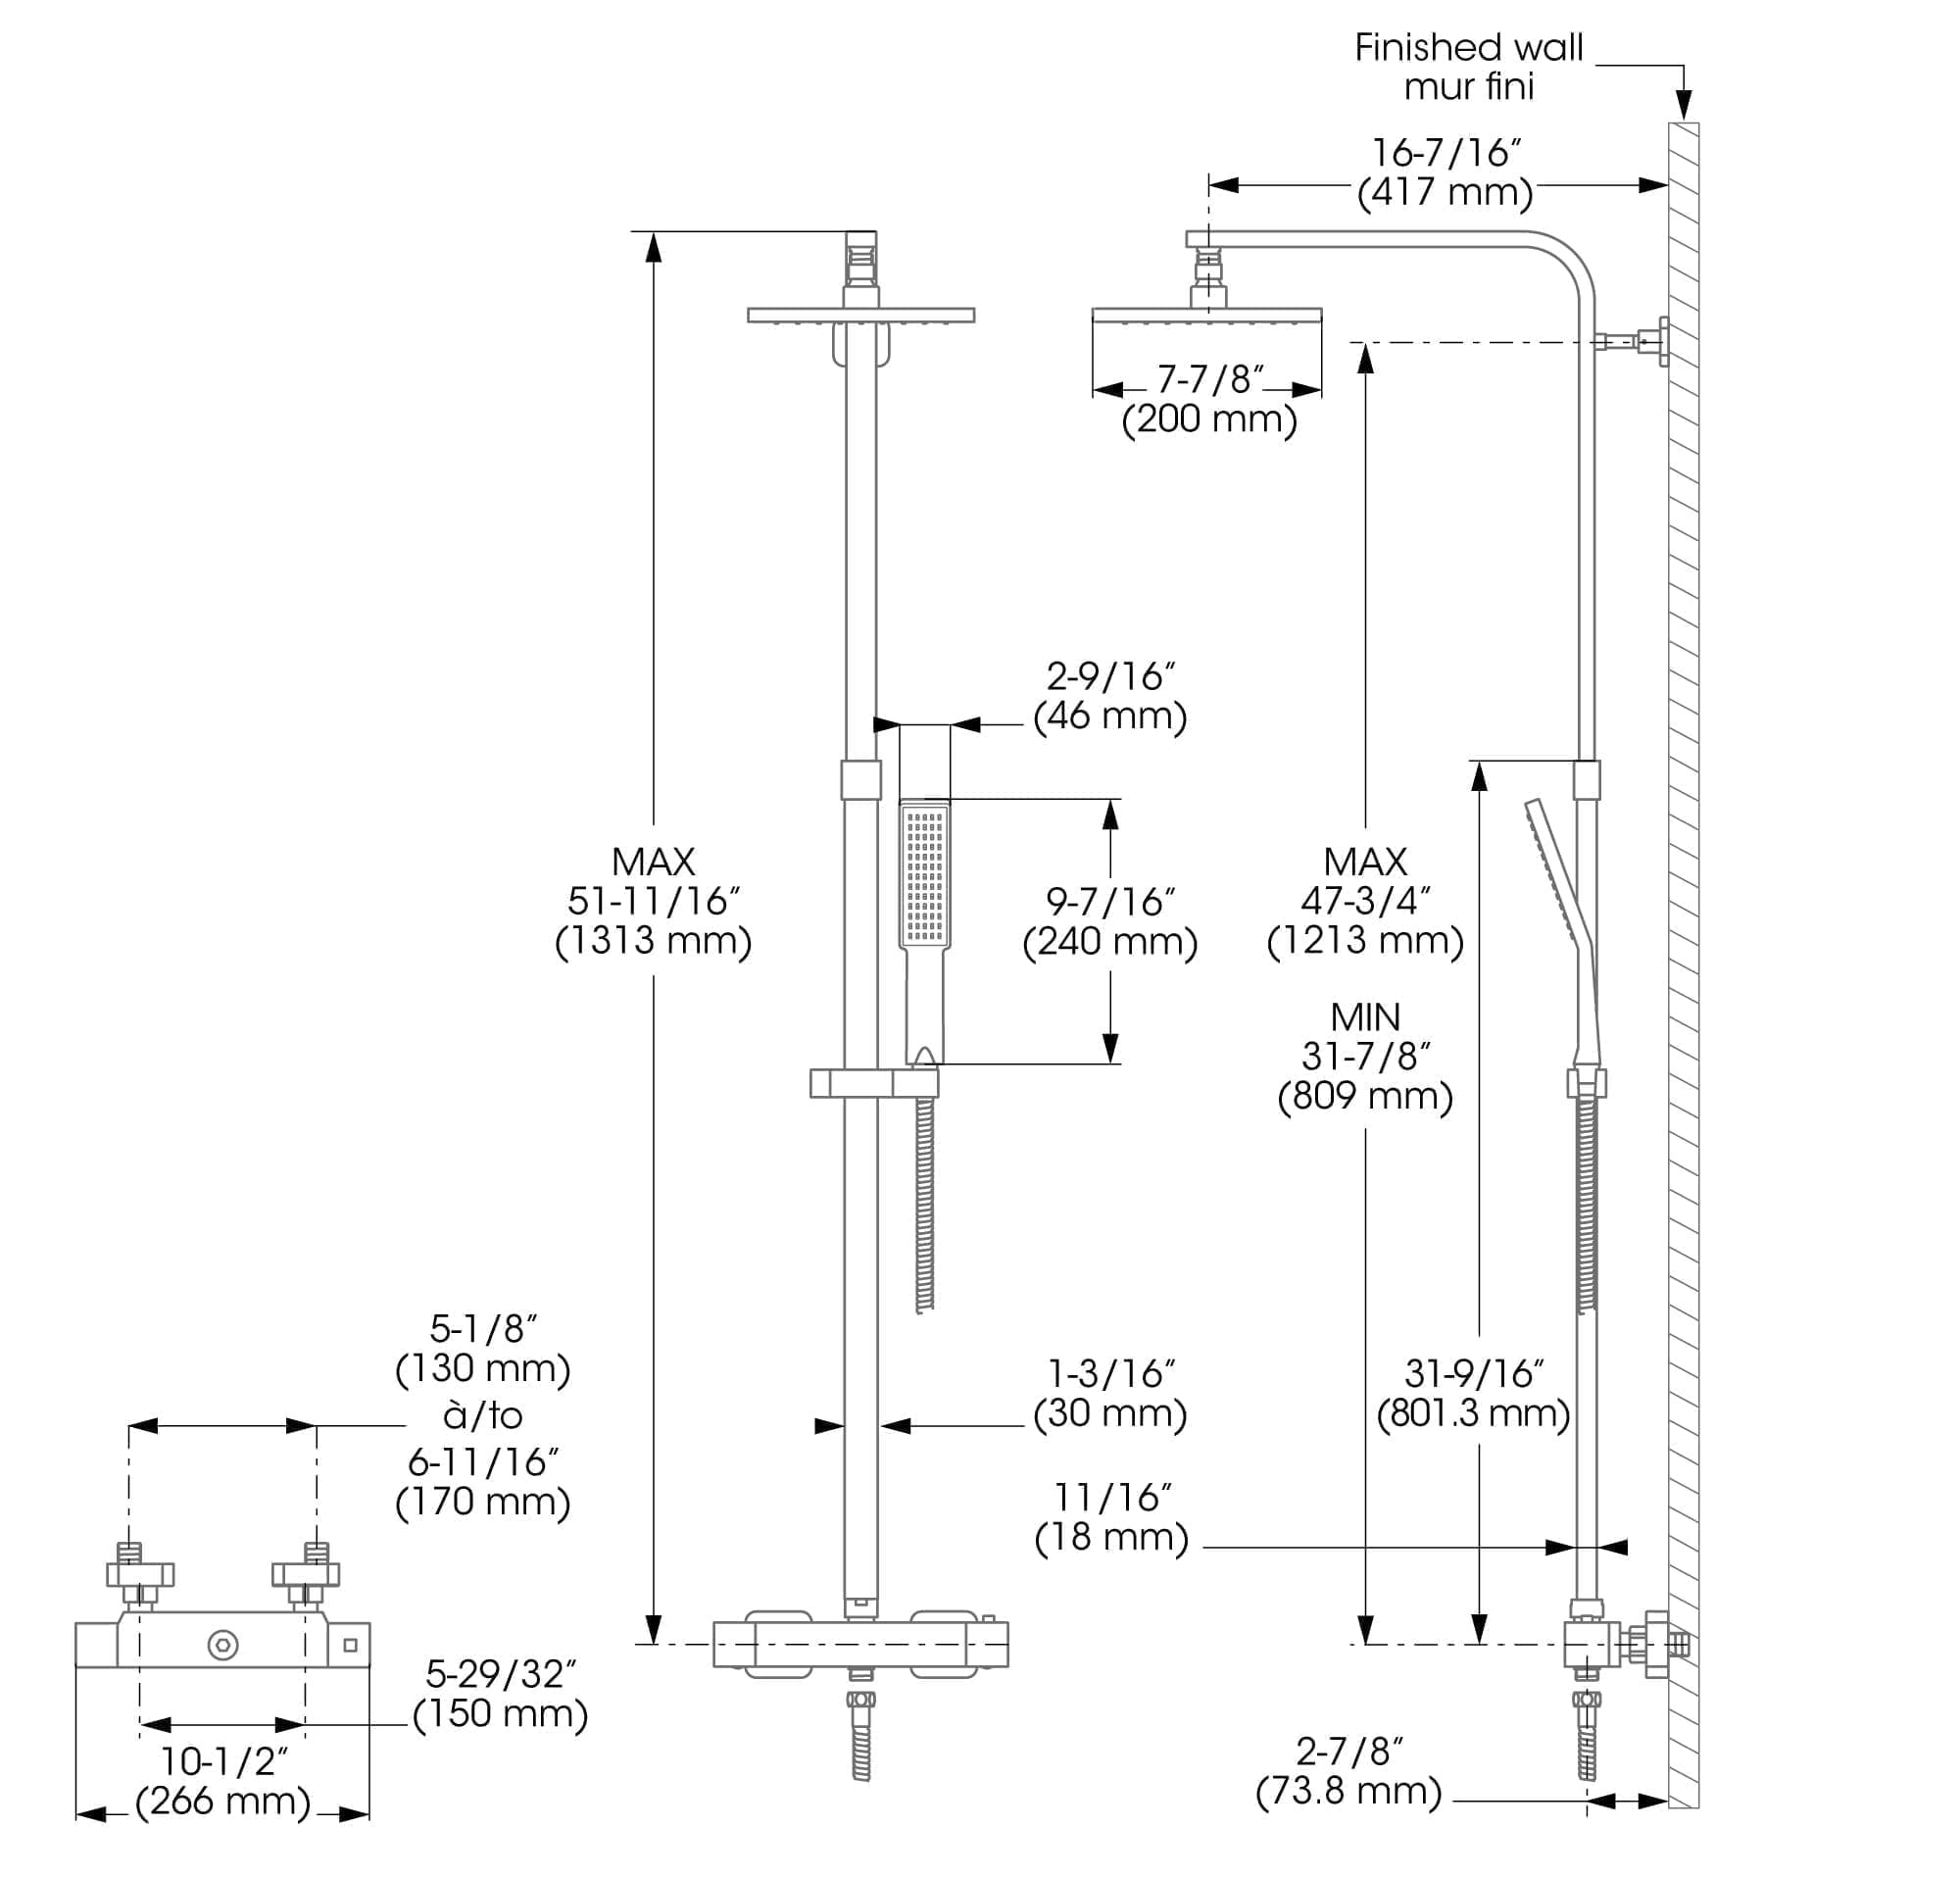 Diagram Of Valve Faucet Engine Control Wiring Delta 555 Parts List And Ereplacementpartscom Kit Shower Complete Model With Thermostatic Repair